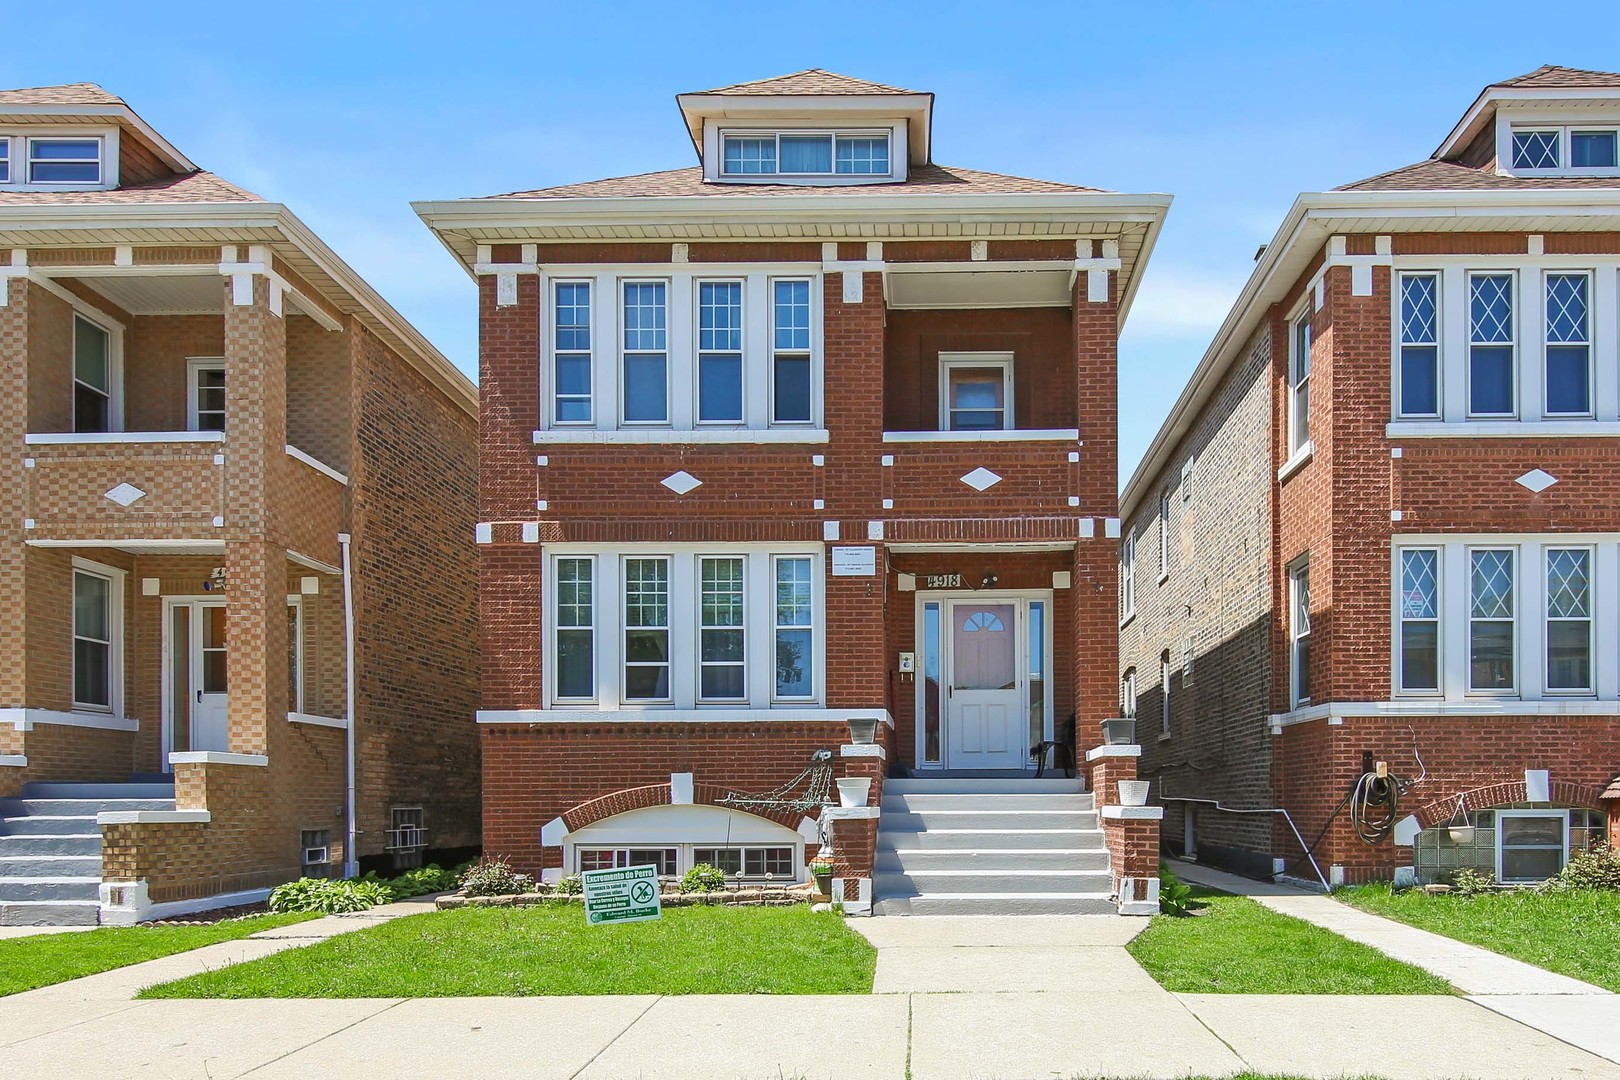 4918 Kolin ,Chicago, Illinois 60632